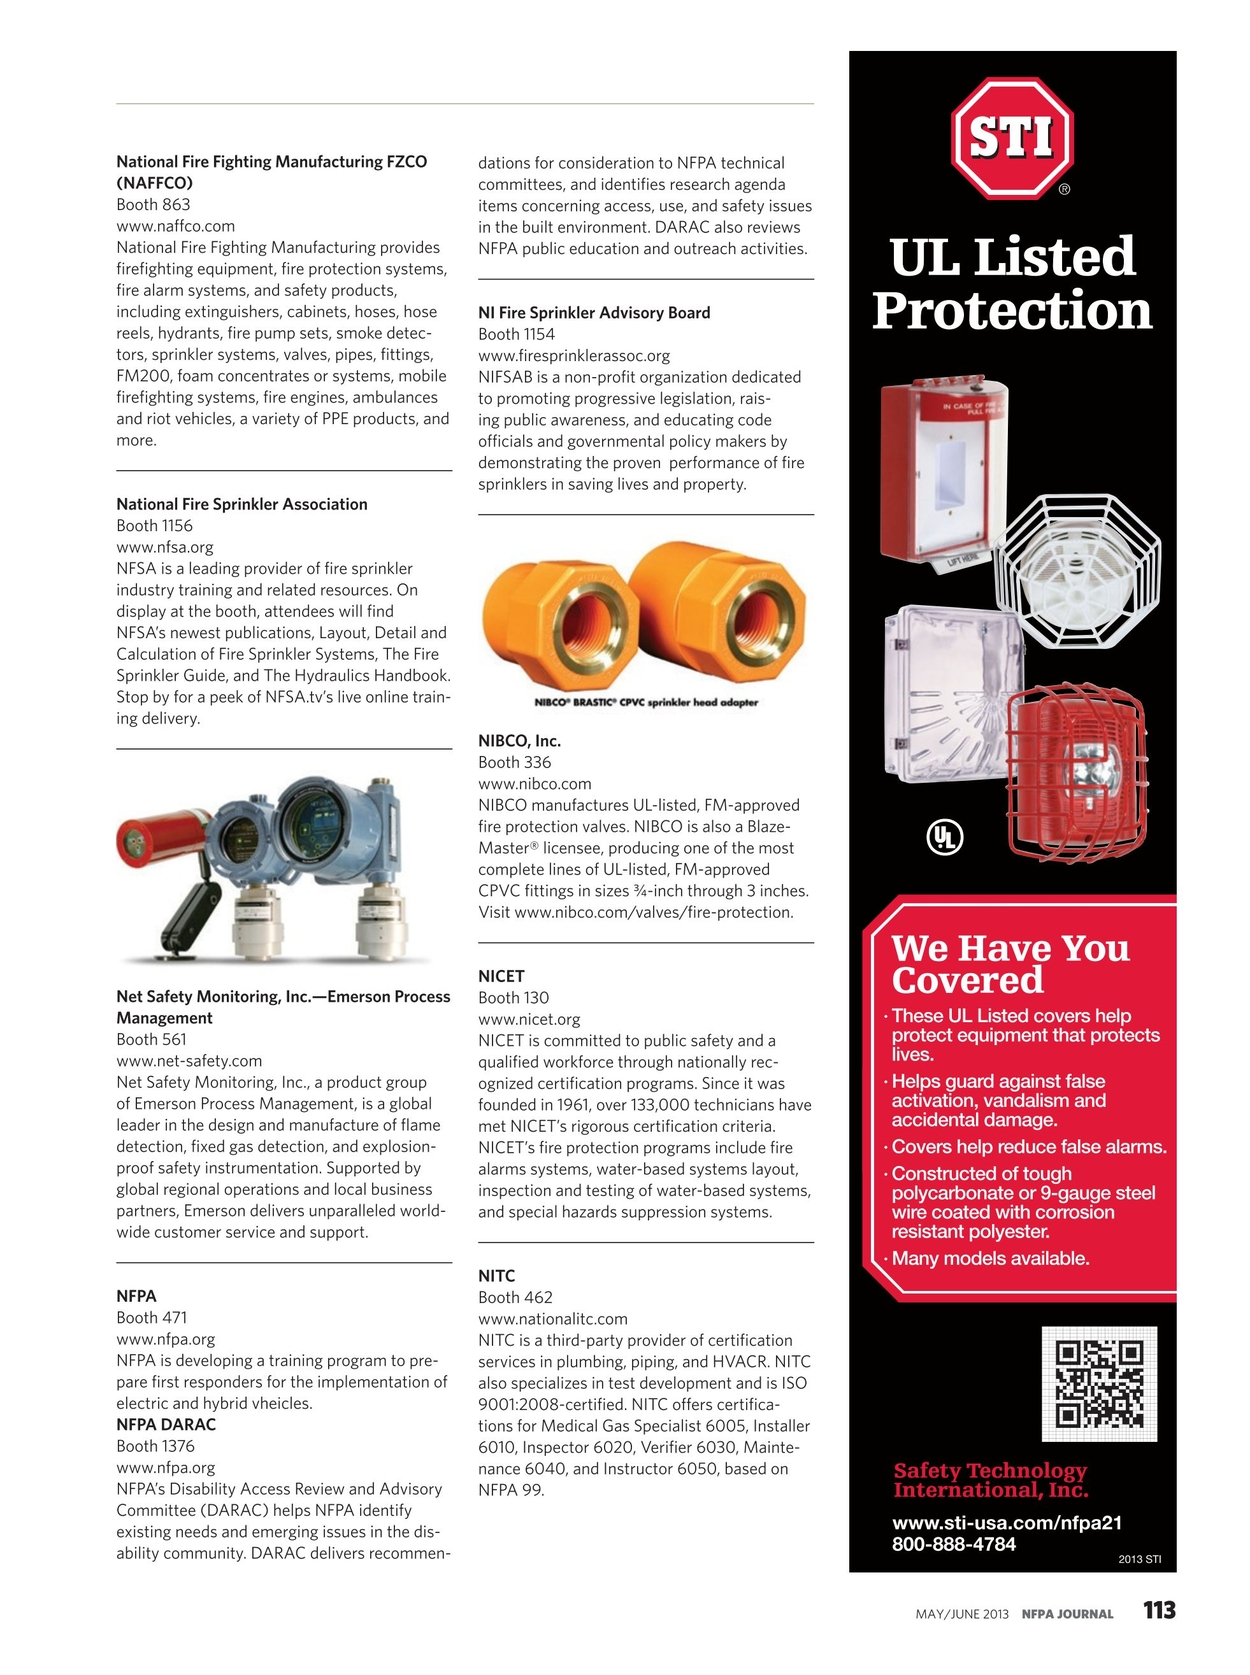 NFPA Journal - May/June 2013